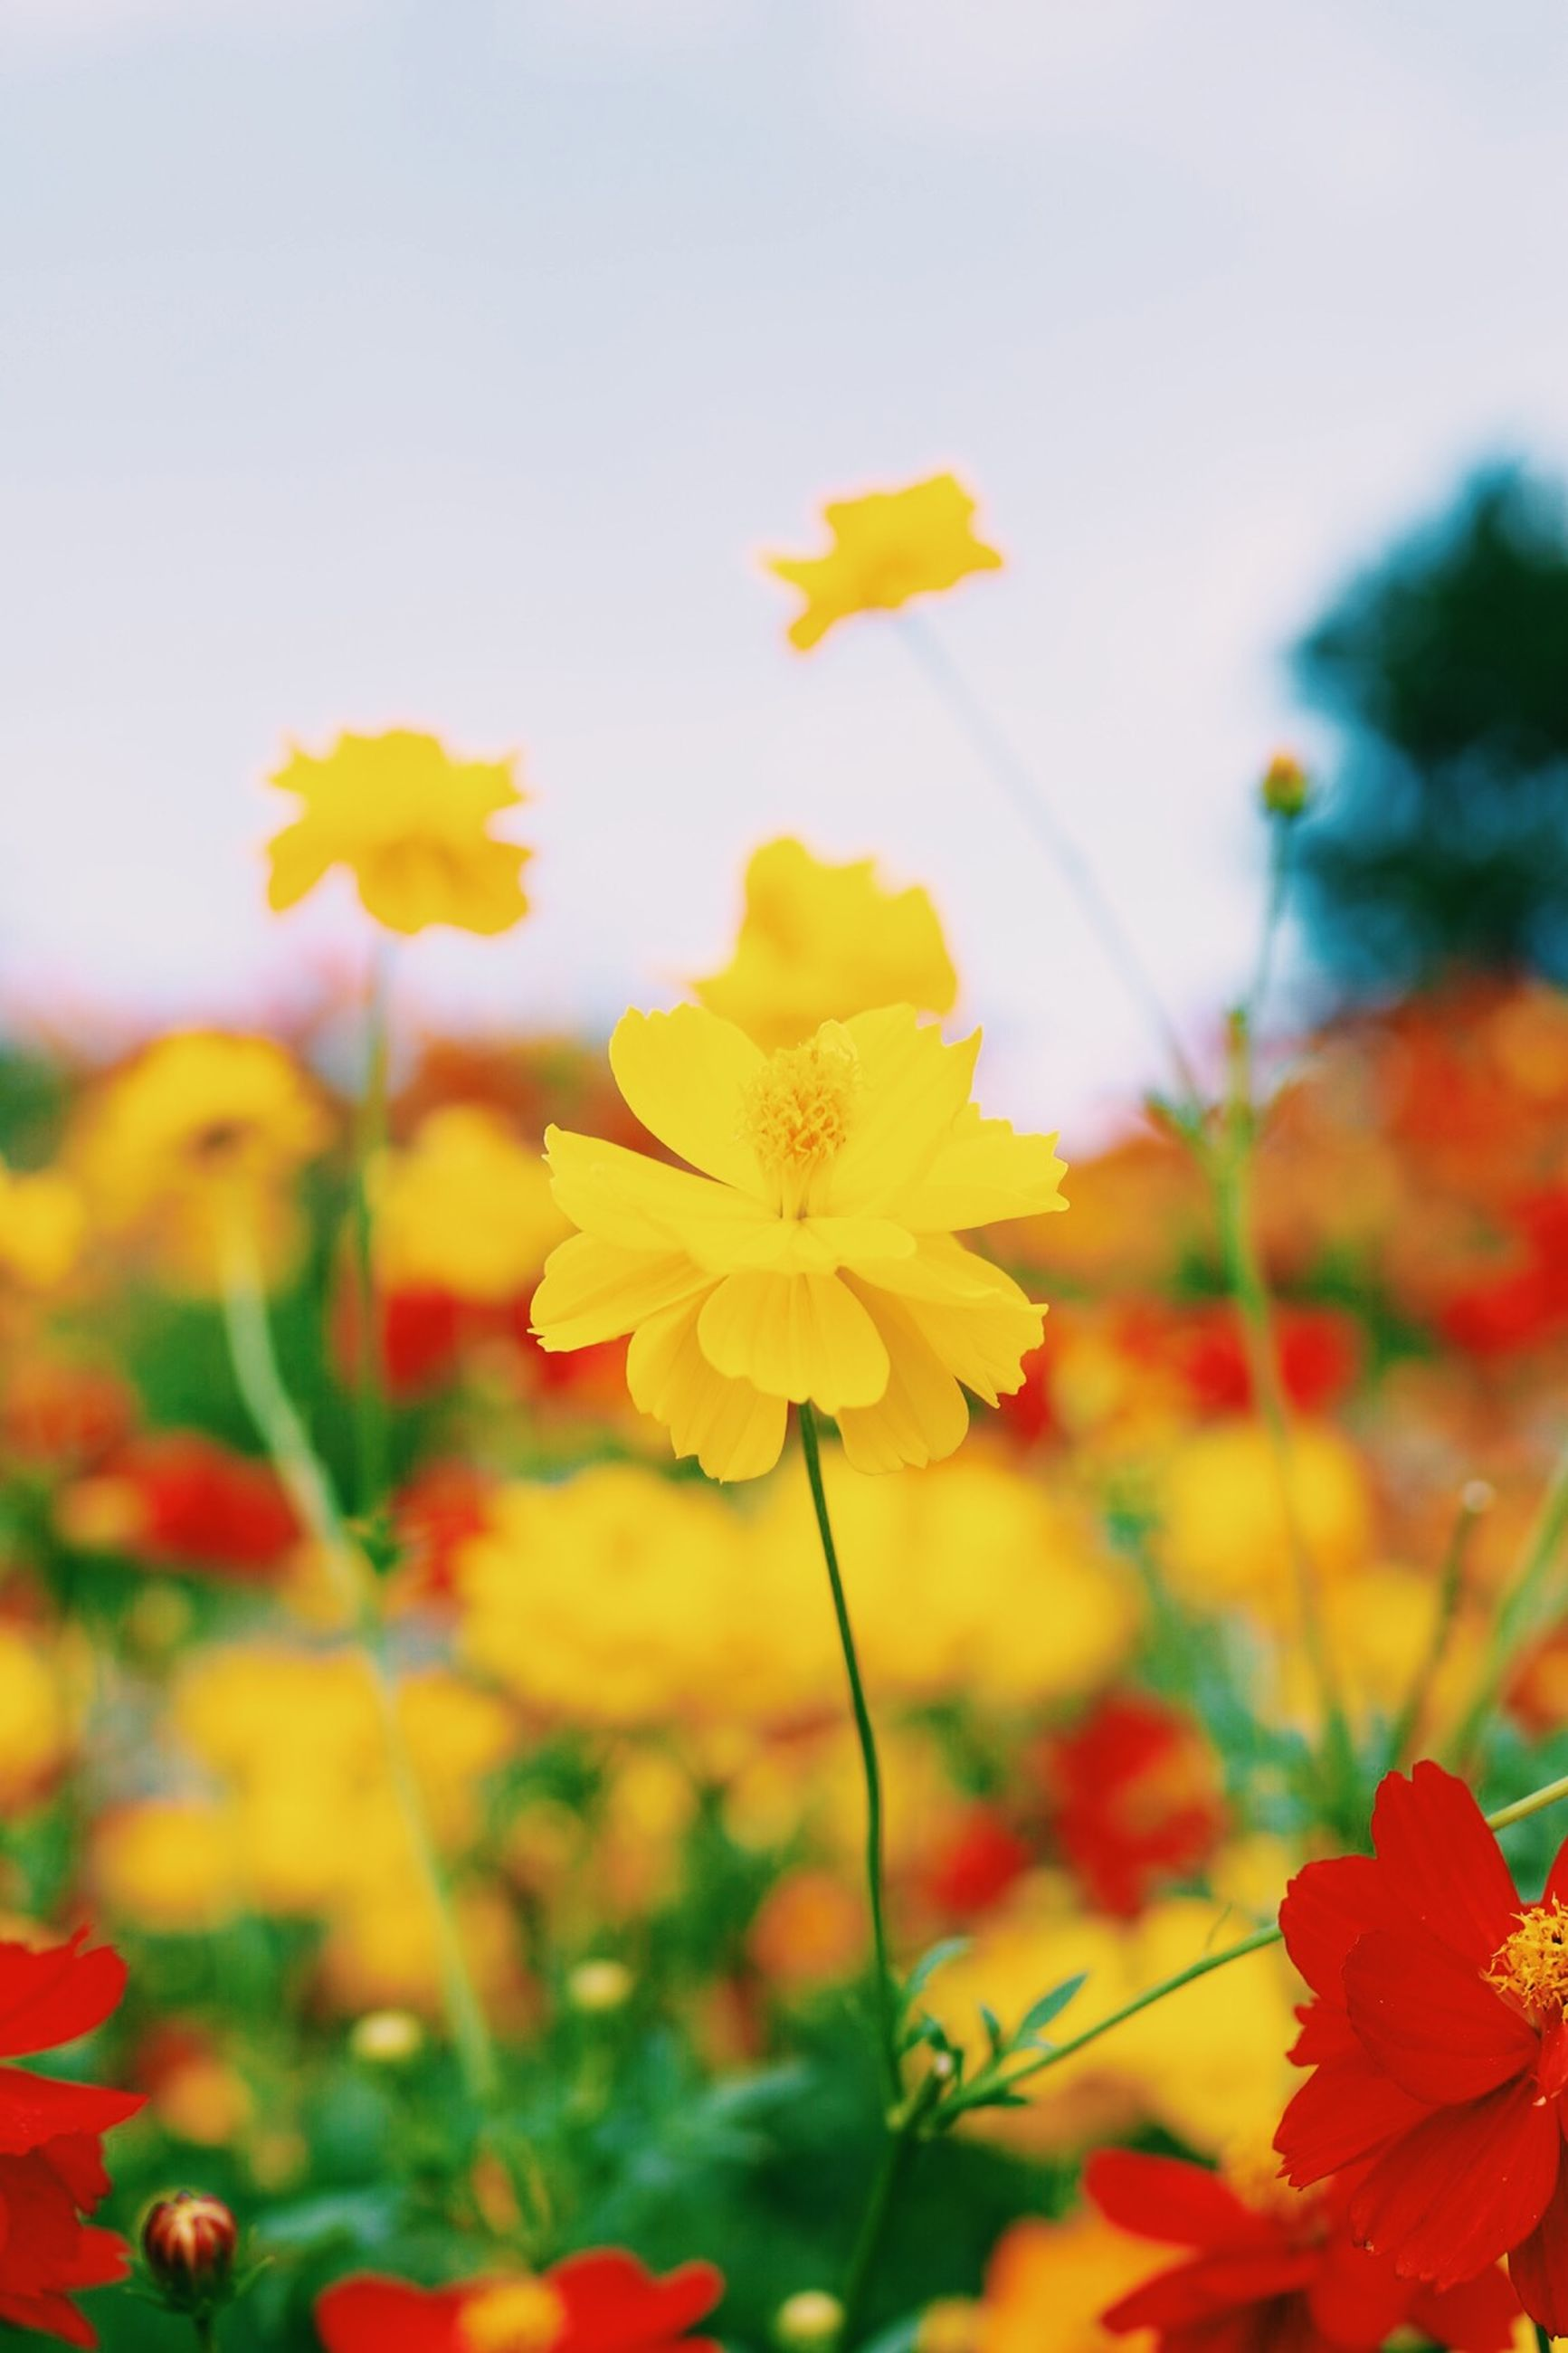 flower, freshness, fragility, petal, growth, beauty in nature, flower head, blooming, focus on foreground, nature, yellow, plant, stem, in bloom, close-up, field, sky, blossom, red, springtime